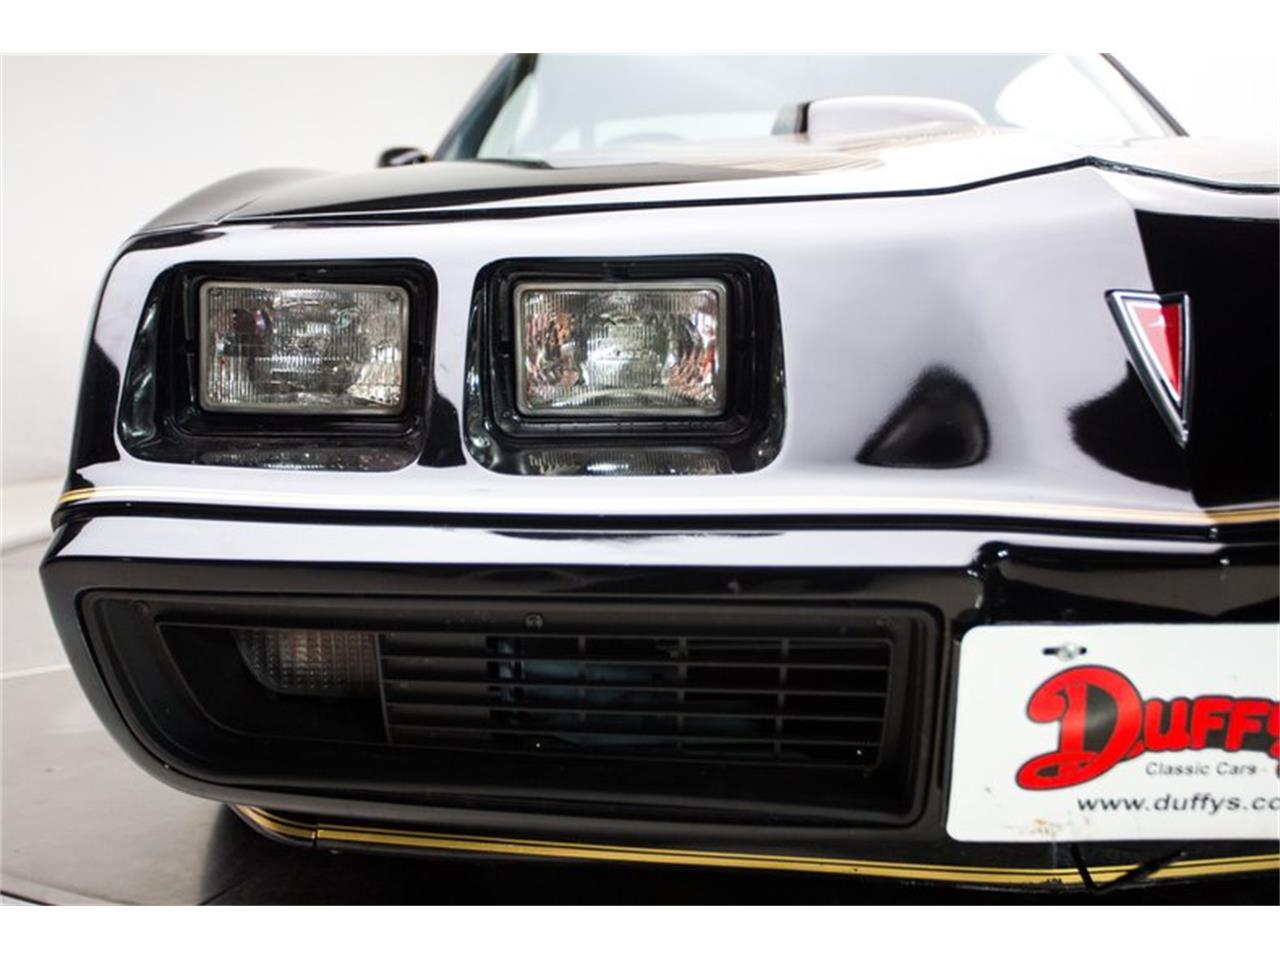 Large Picture of 1981 Firebird Trans Am located in Cedar Rapids Iowa - $29,950.00 Offered by Duffy's Classic Cars - OV9G